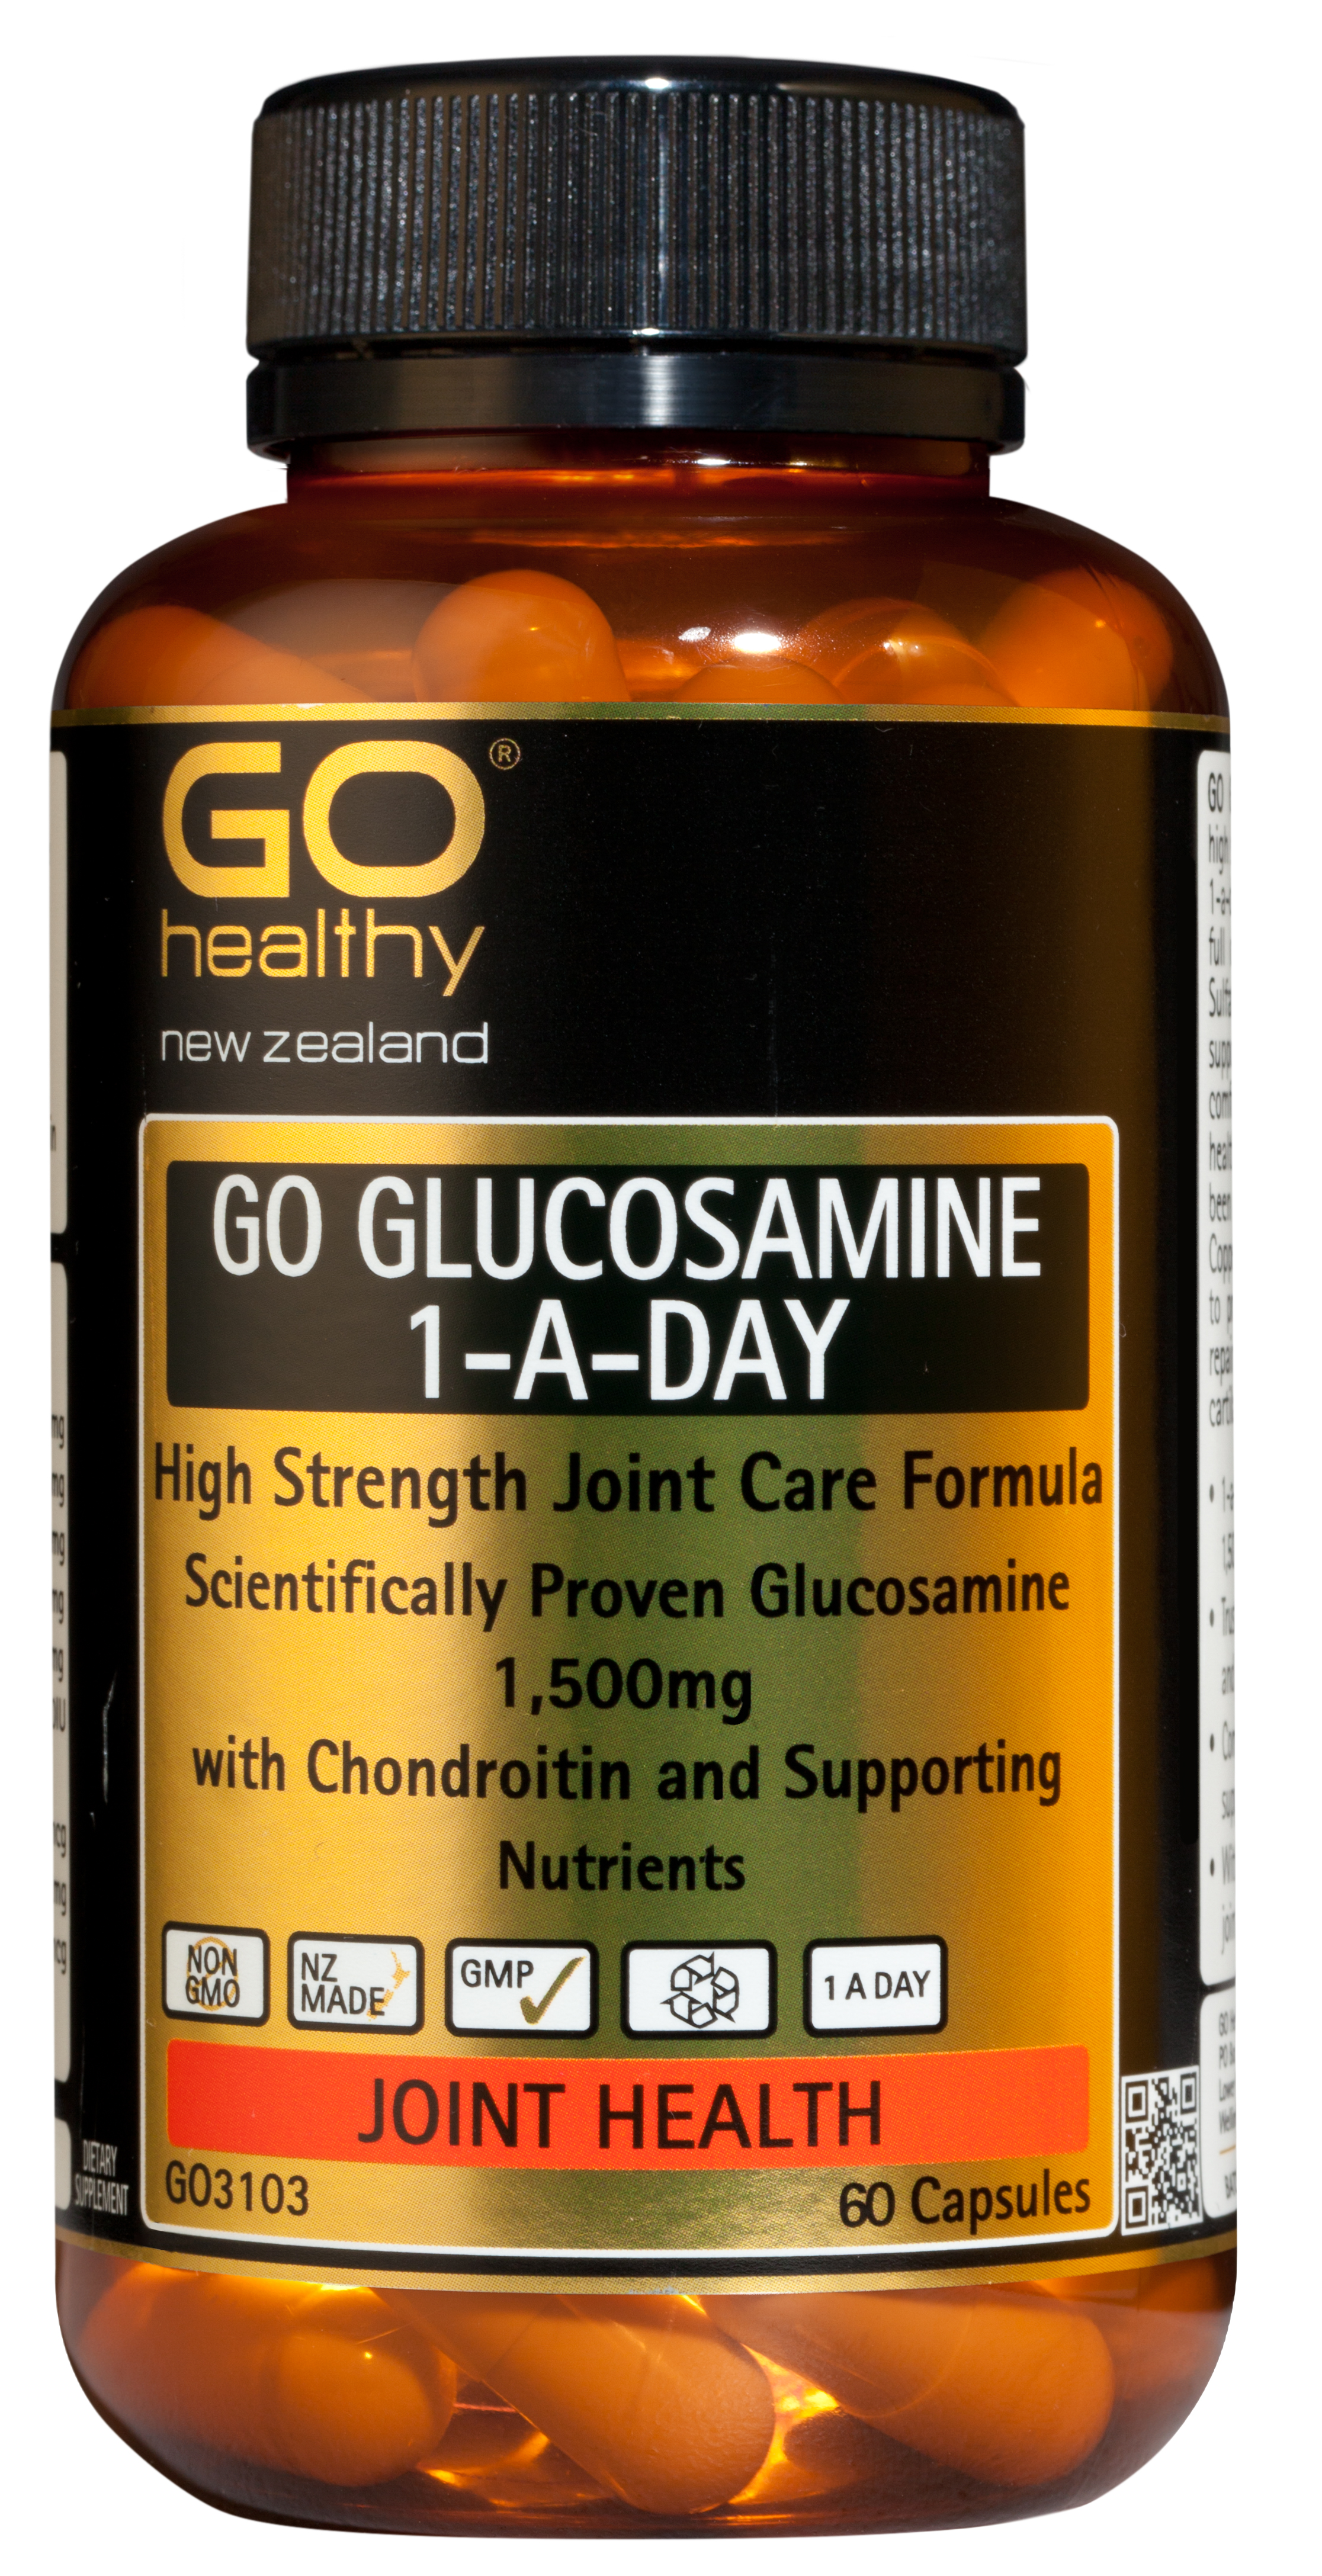 GO Healthy Glucosamine 1-A-Day 60 Capsules